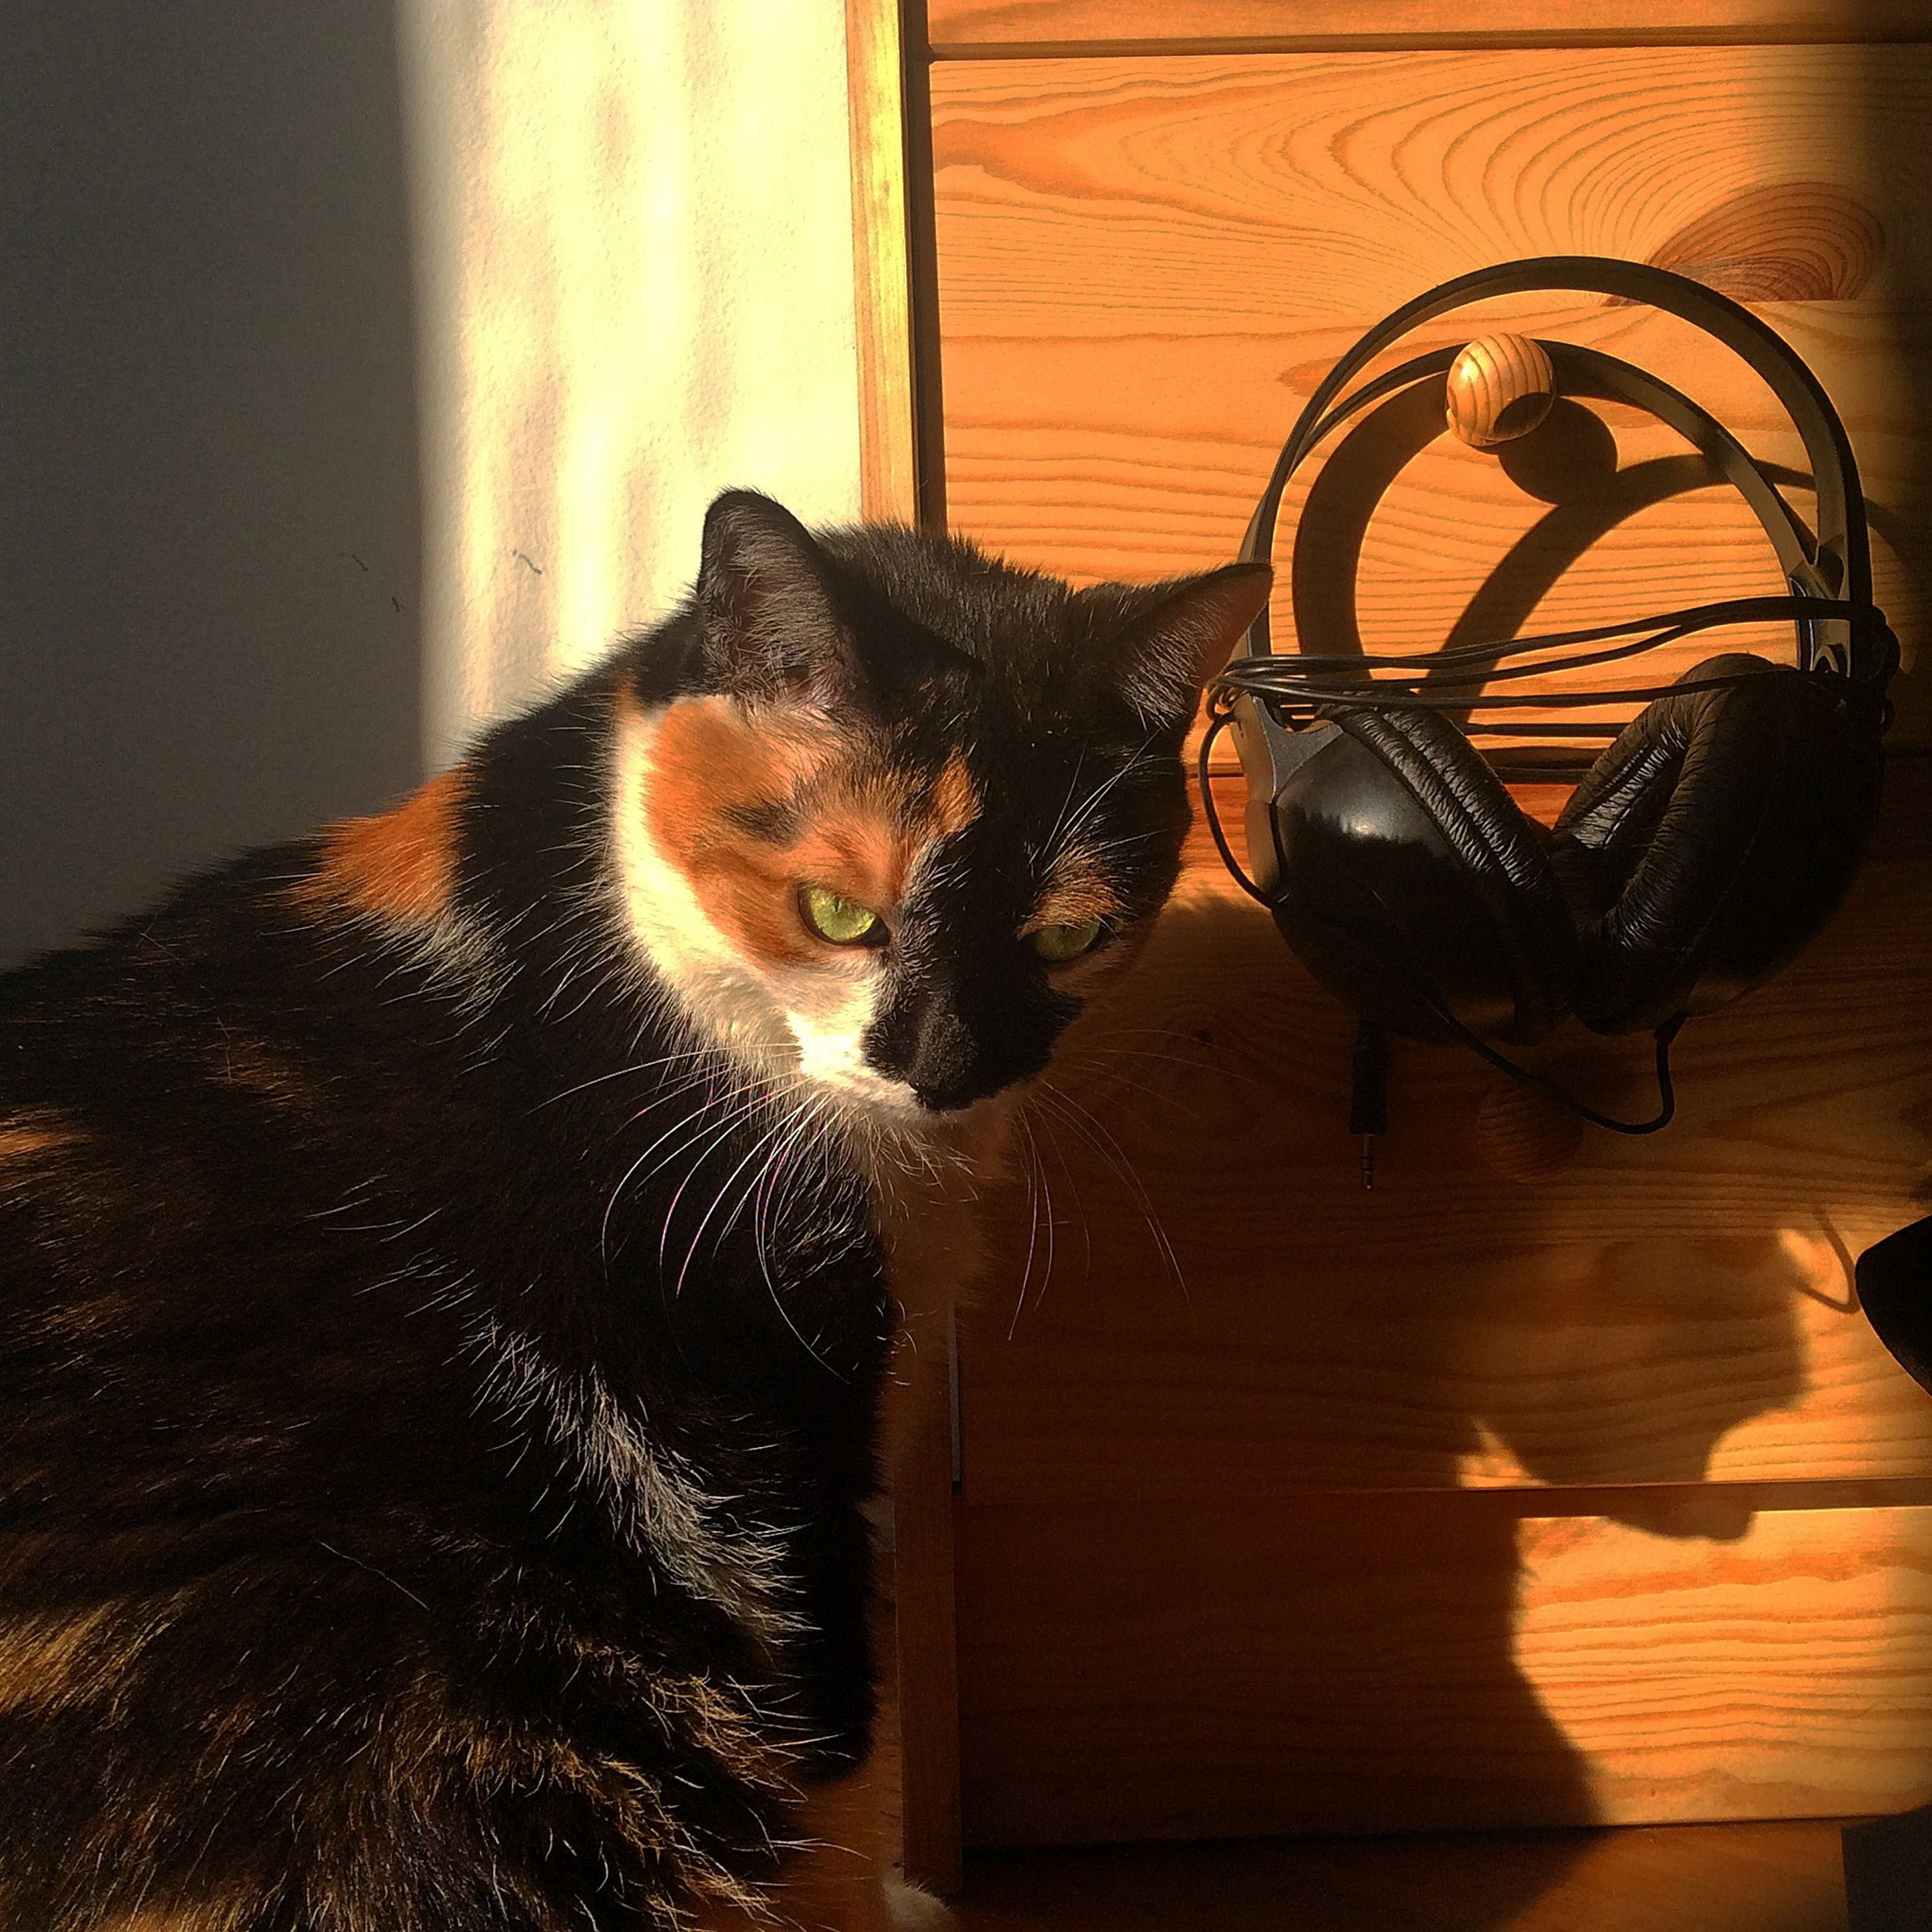 pets, domestic cat, cat, domestic animals, animal themes, mammal, one animal, feline, indoors, whisker, looking at camera, portrait, relaxation, home interior, staring, sitting, no people, wood - material, black color, alertness